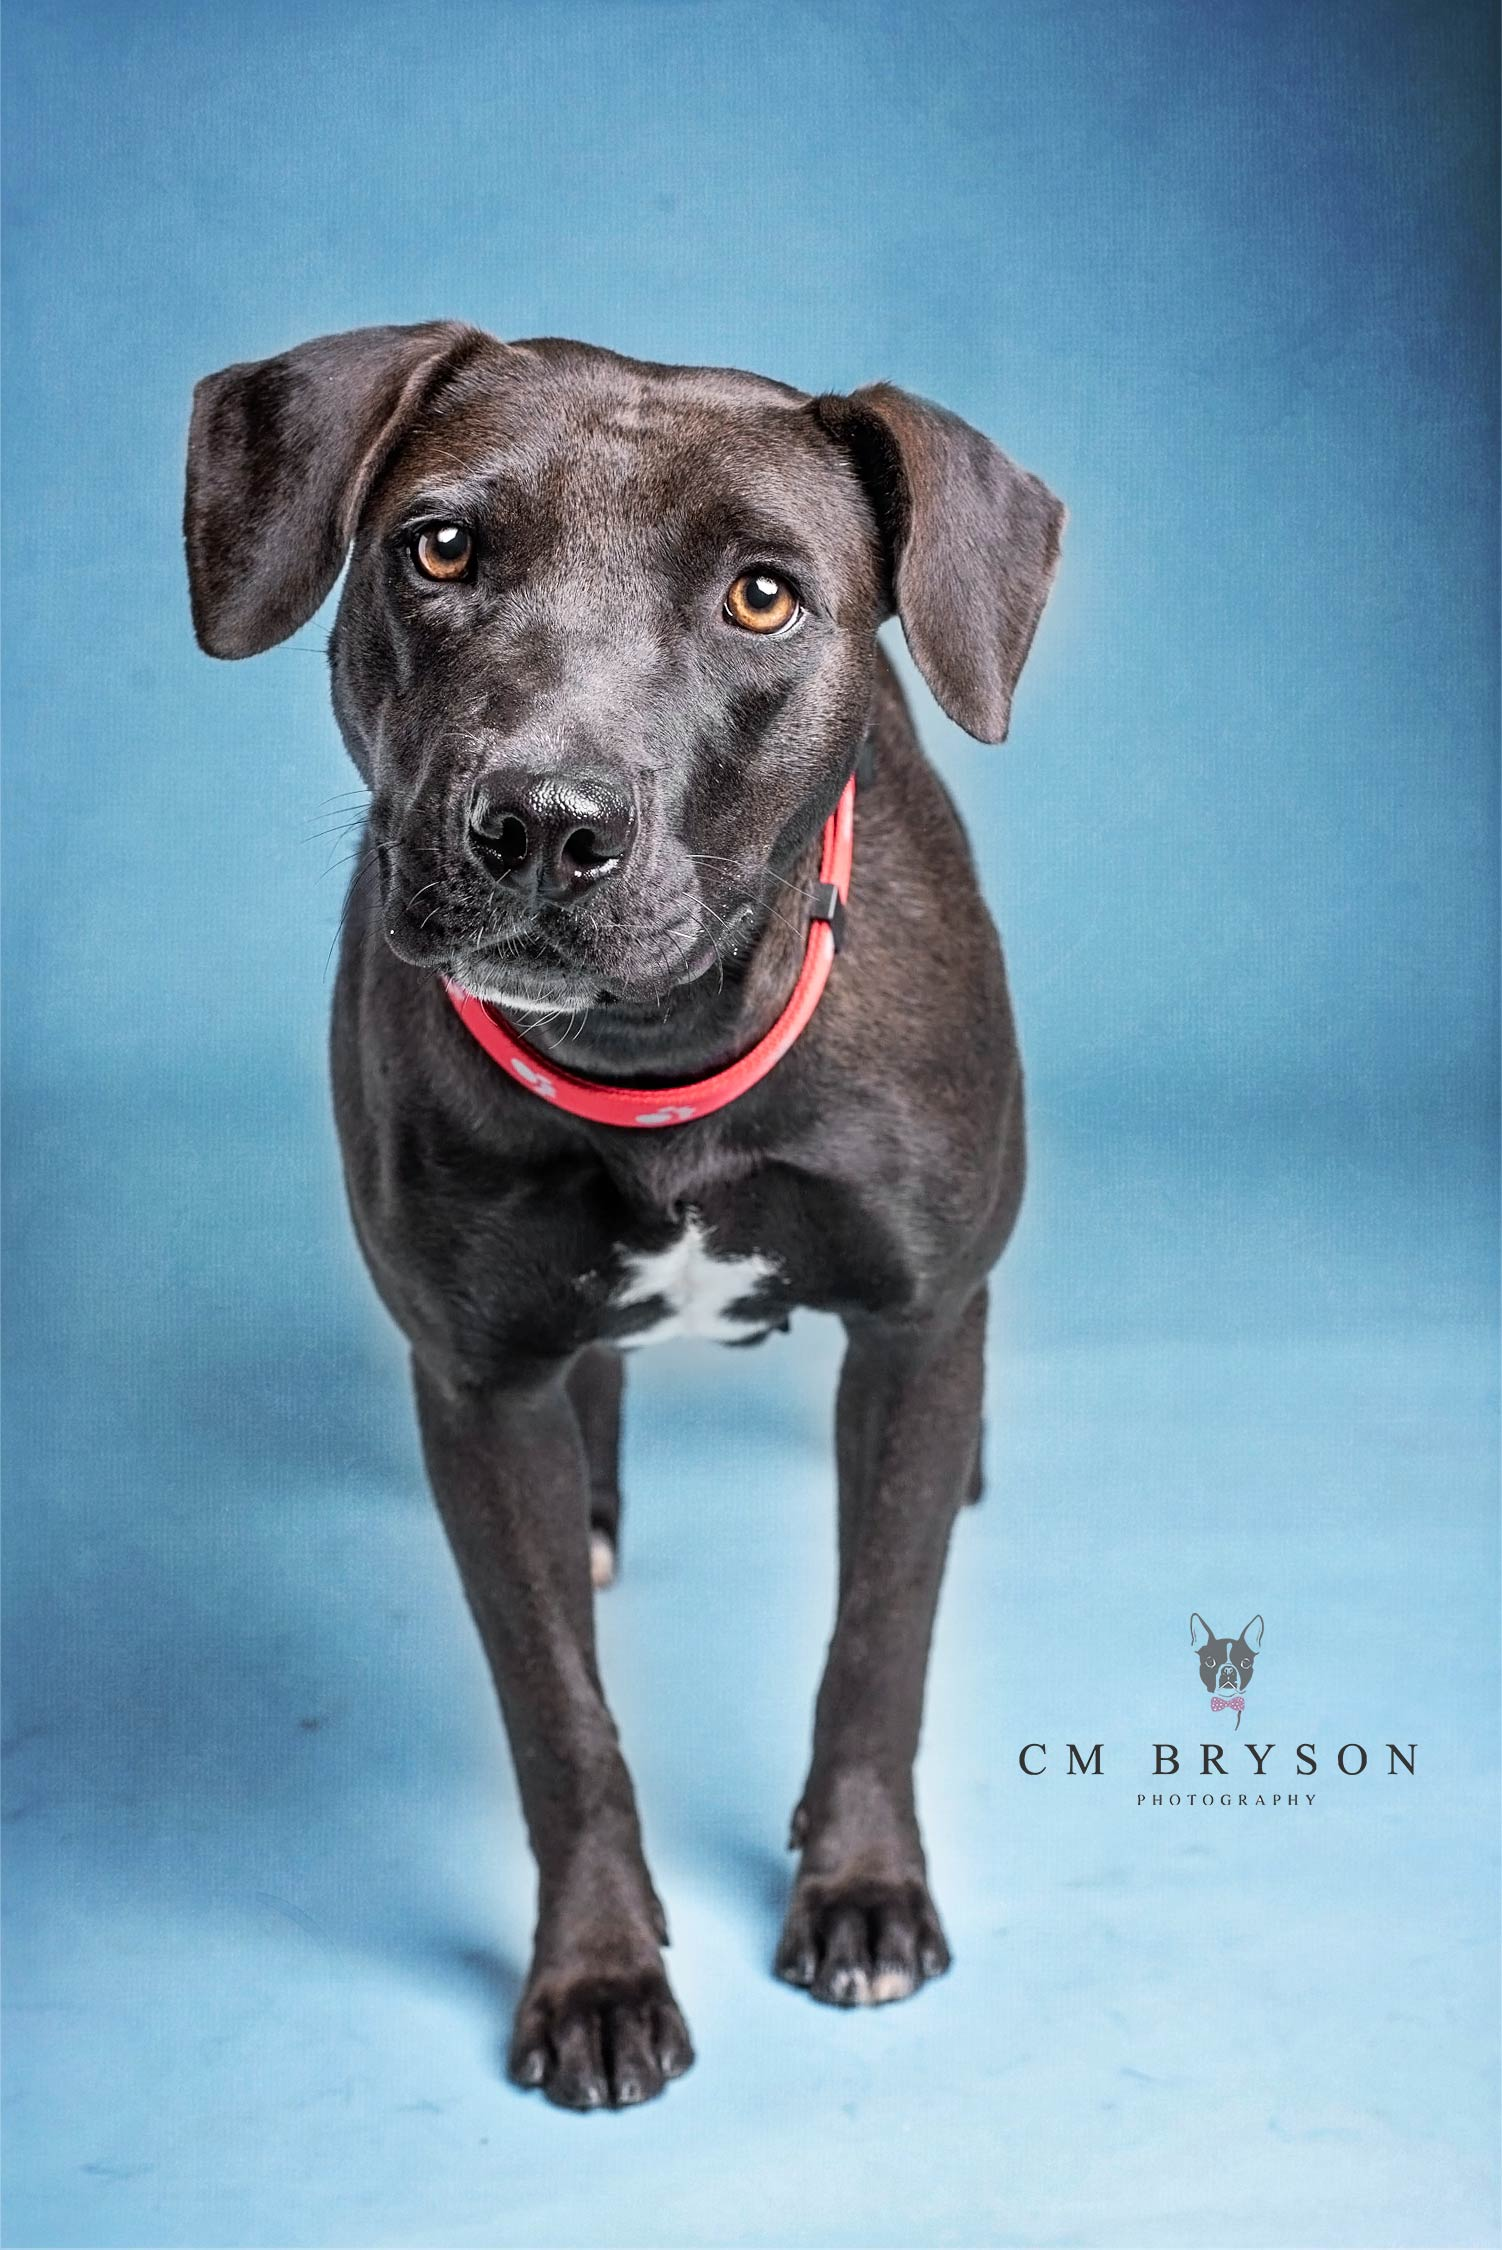 Cricket - Lab or Heeler Mix - Adoptable Dog